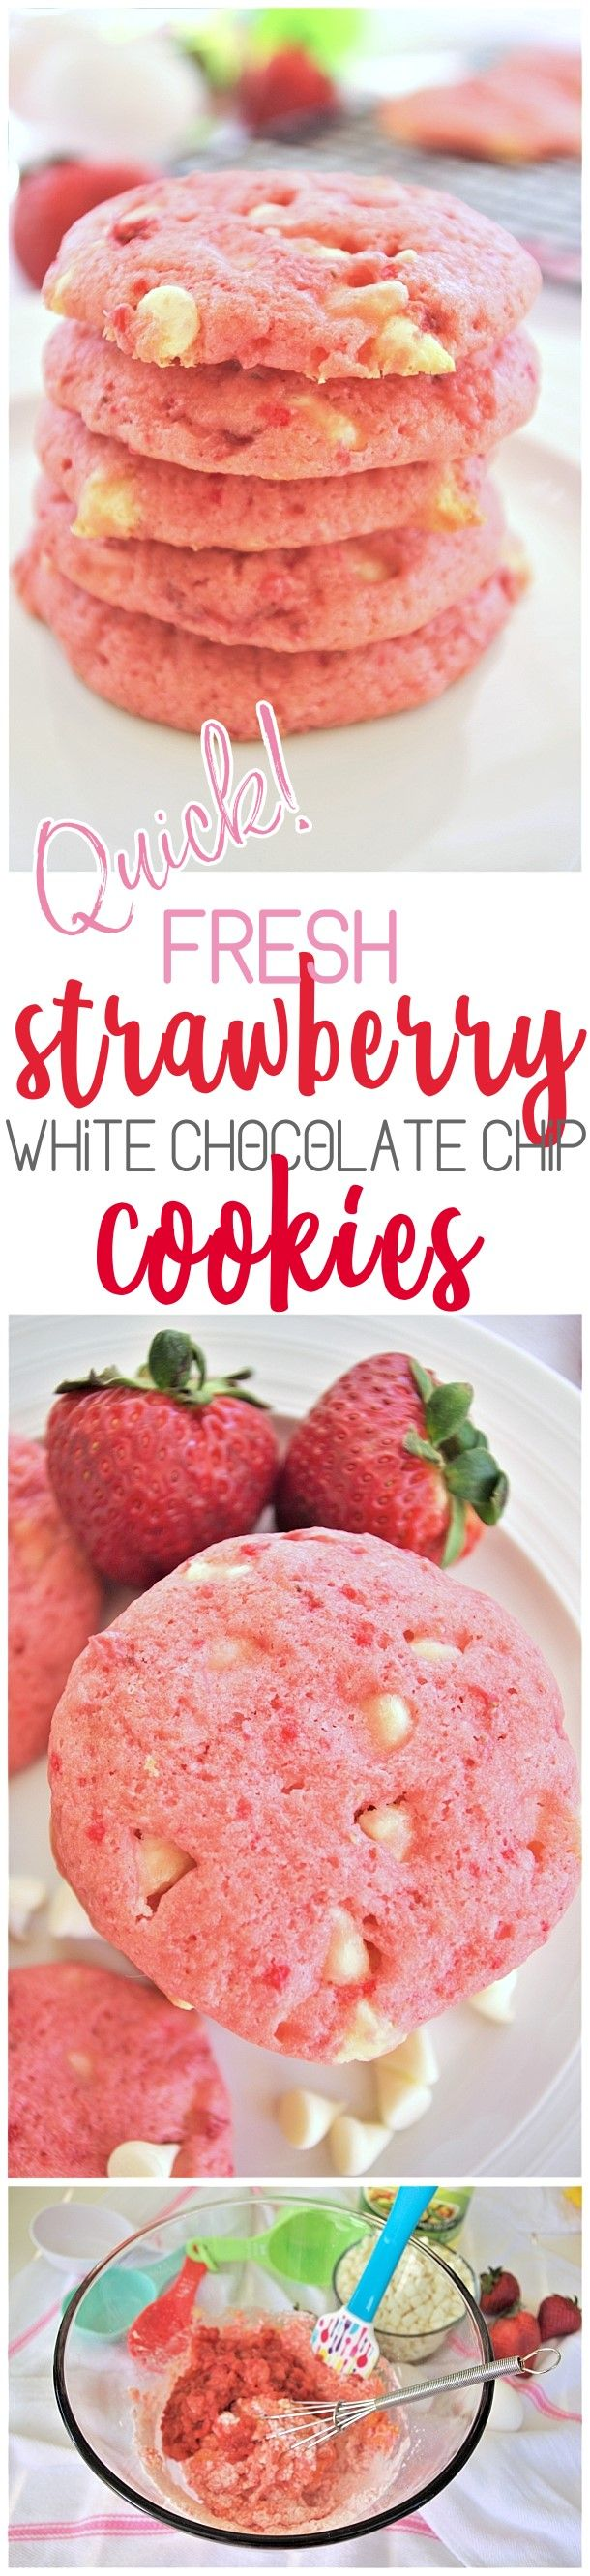 Fresh Strawberry White Chocolate Chip Cookies Dessert Easy and Quick Treats Recipe - #strawberrycookies #strawberrywhitechocolatecookies #easycookies #pinkcookies #valentinesdaydesserts #valentinesday #babyshowerdesserts #bridalshowerdesserts #brunch #springdesserts #summerdesserts This recipe is so quick, easy and PERFECT for so many occasions. Darling pink gender reveal baby girl showers, Valentine's Day desserts and gift plates, bridal shower dessert tables, any spring and summer birthday…